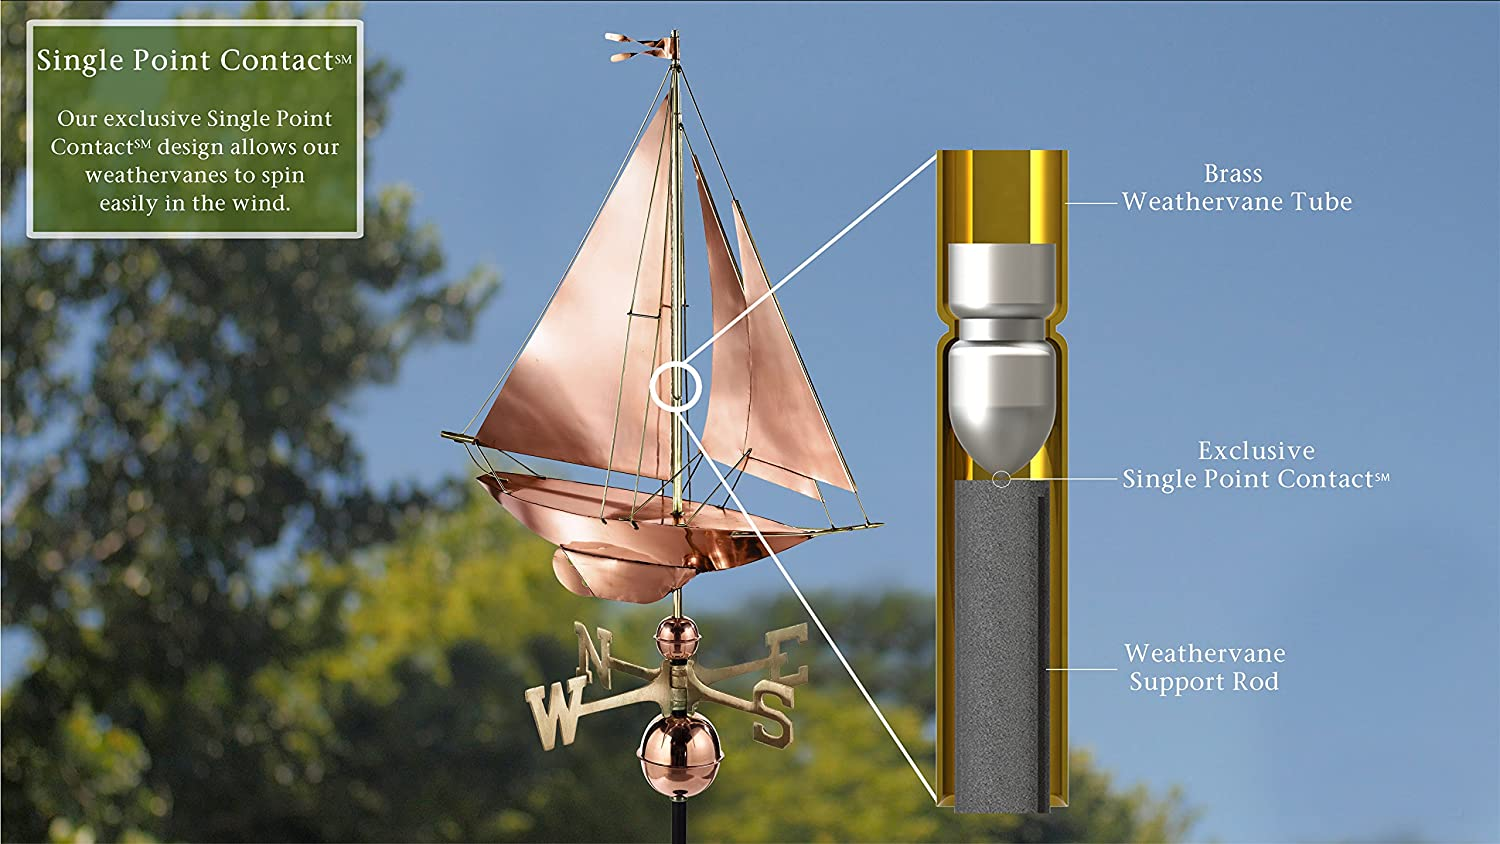 Boat 24 inch Pure Copper with Brass Sails Good Directions Racing Sloop Weathervane Wind Vane